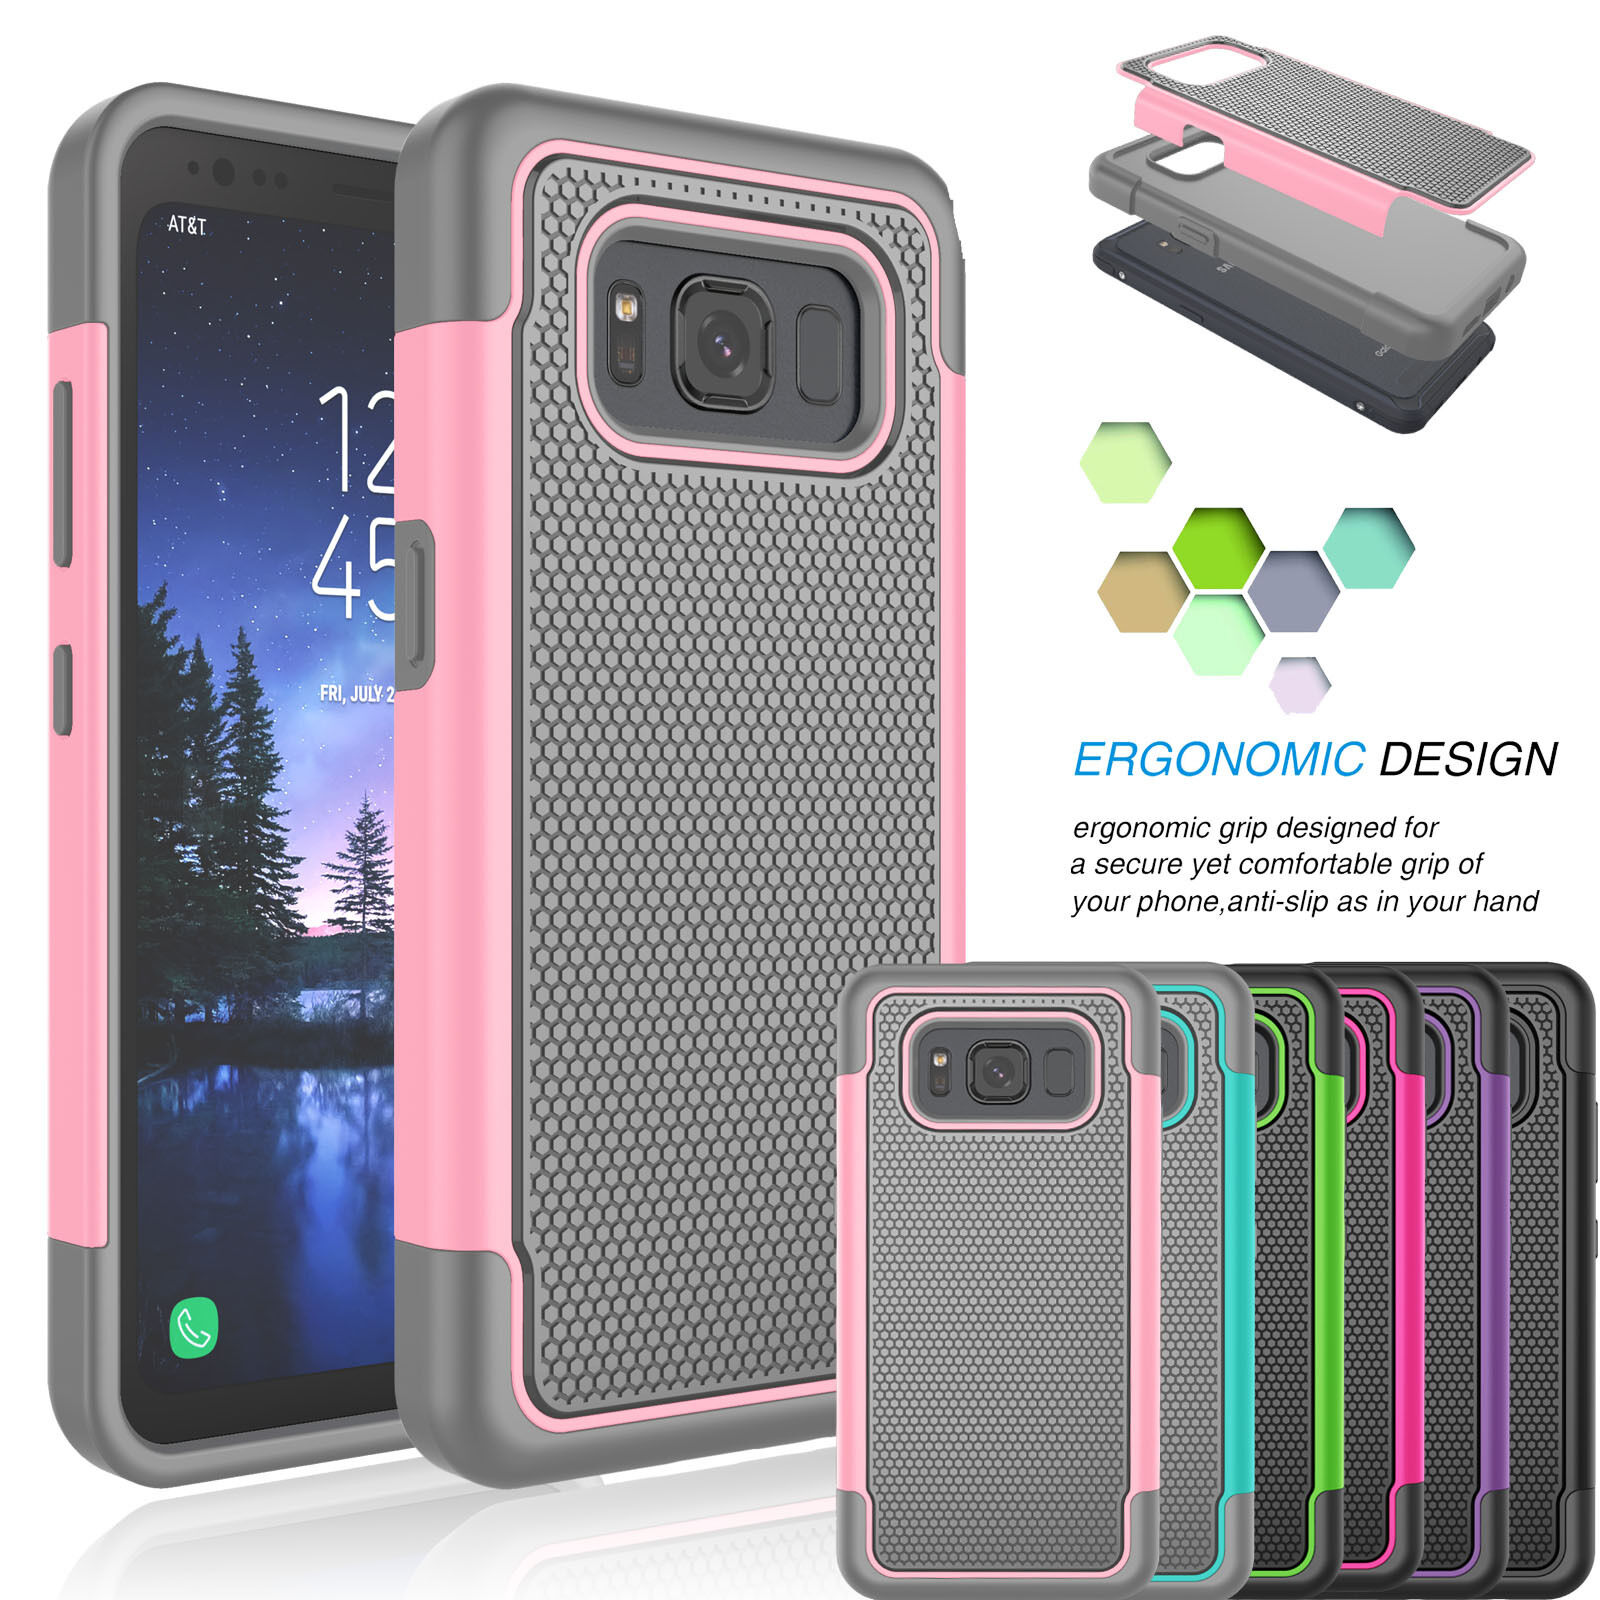 Hybrid Impact Shockproof Matte Armor Case Cover For Samsung Galaxy S8 Active Cases, Covers & Skins